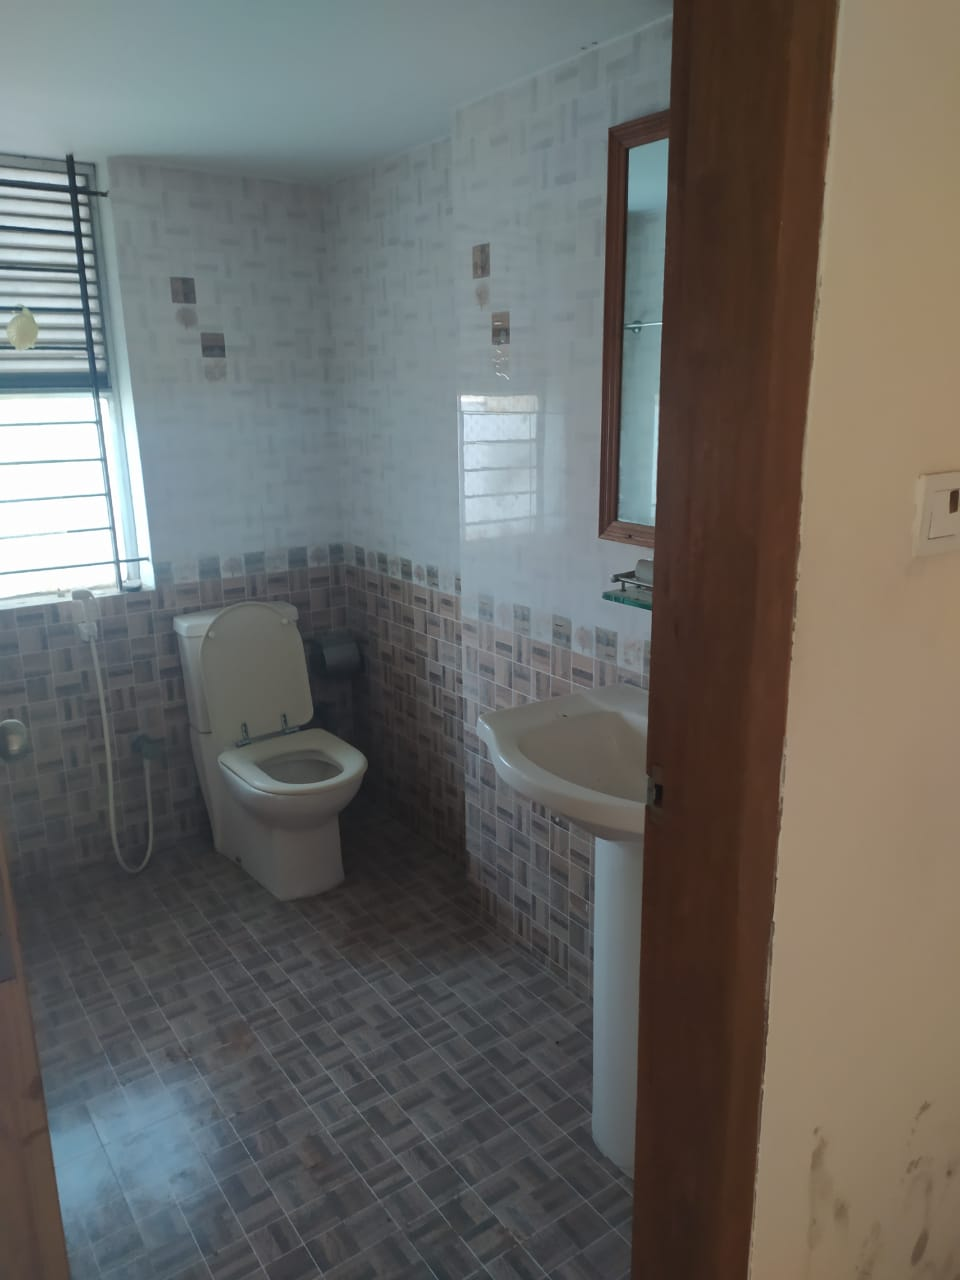 2495-sft-apartment-for-rent-in-north-khulshi-chittagong-5th-floor-812489